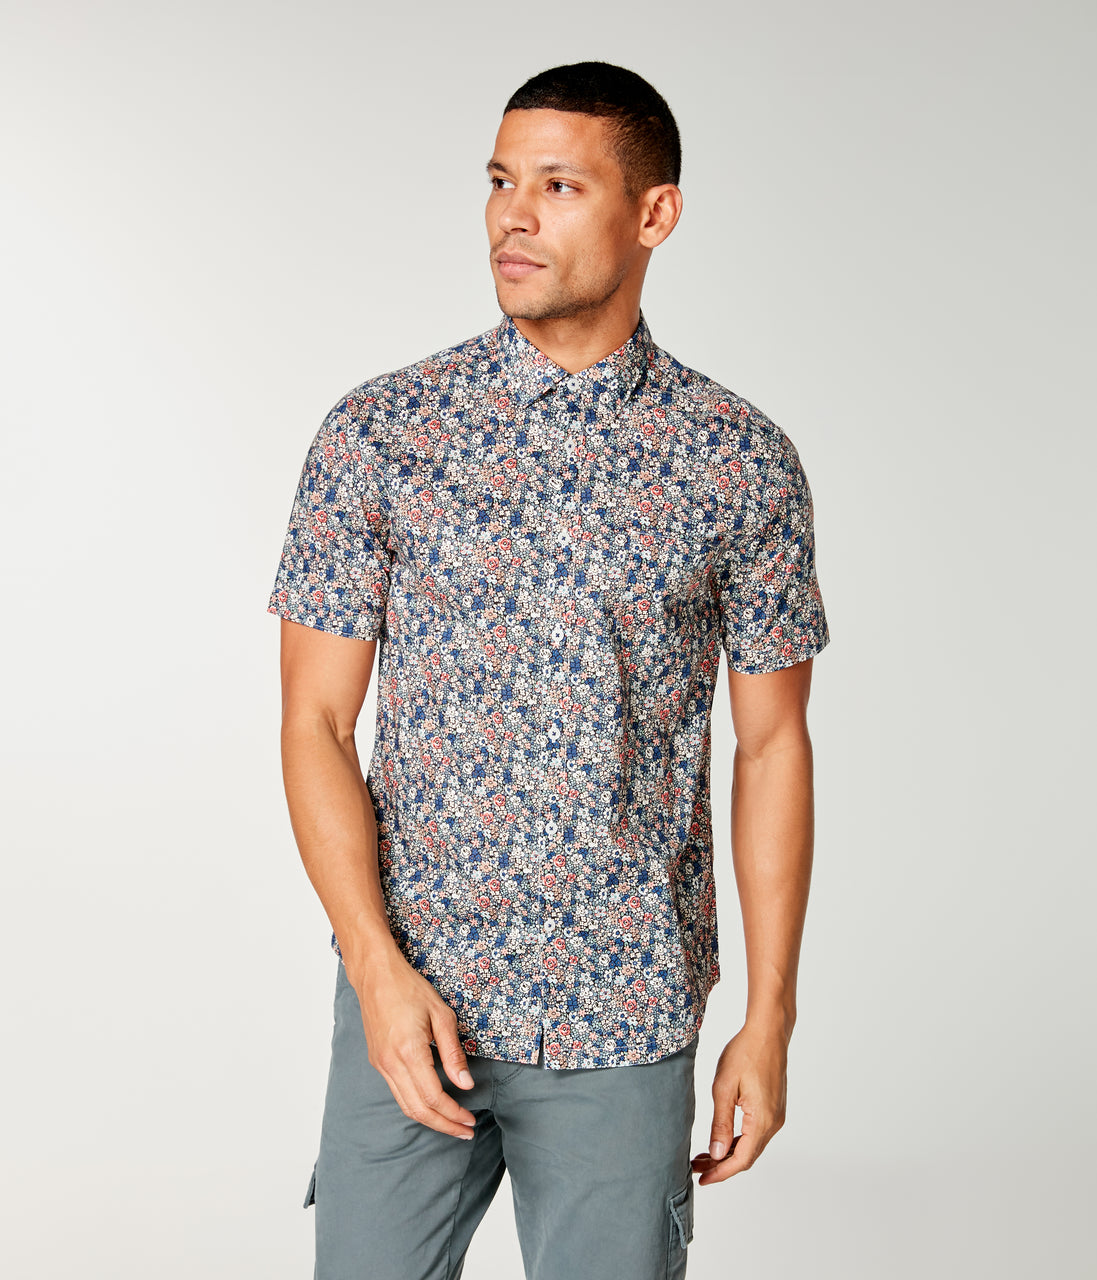 Woven On-Point Shirt - Sunset St. Tropez Floral - Good Man Brand - On-Point Print Shirt Short Sleeve - Sunset St. Tropez Floral